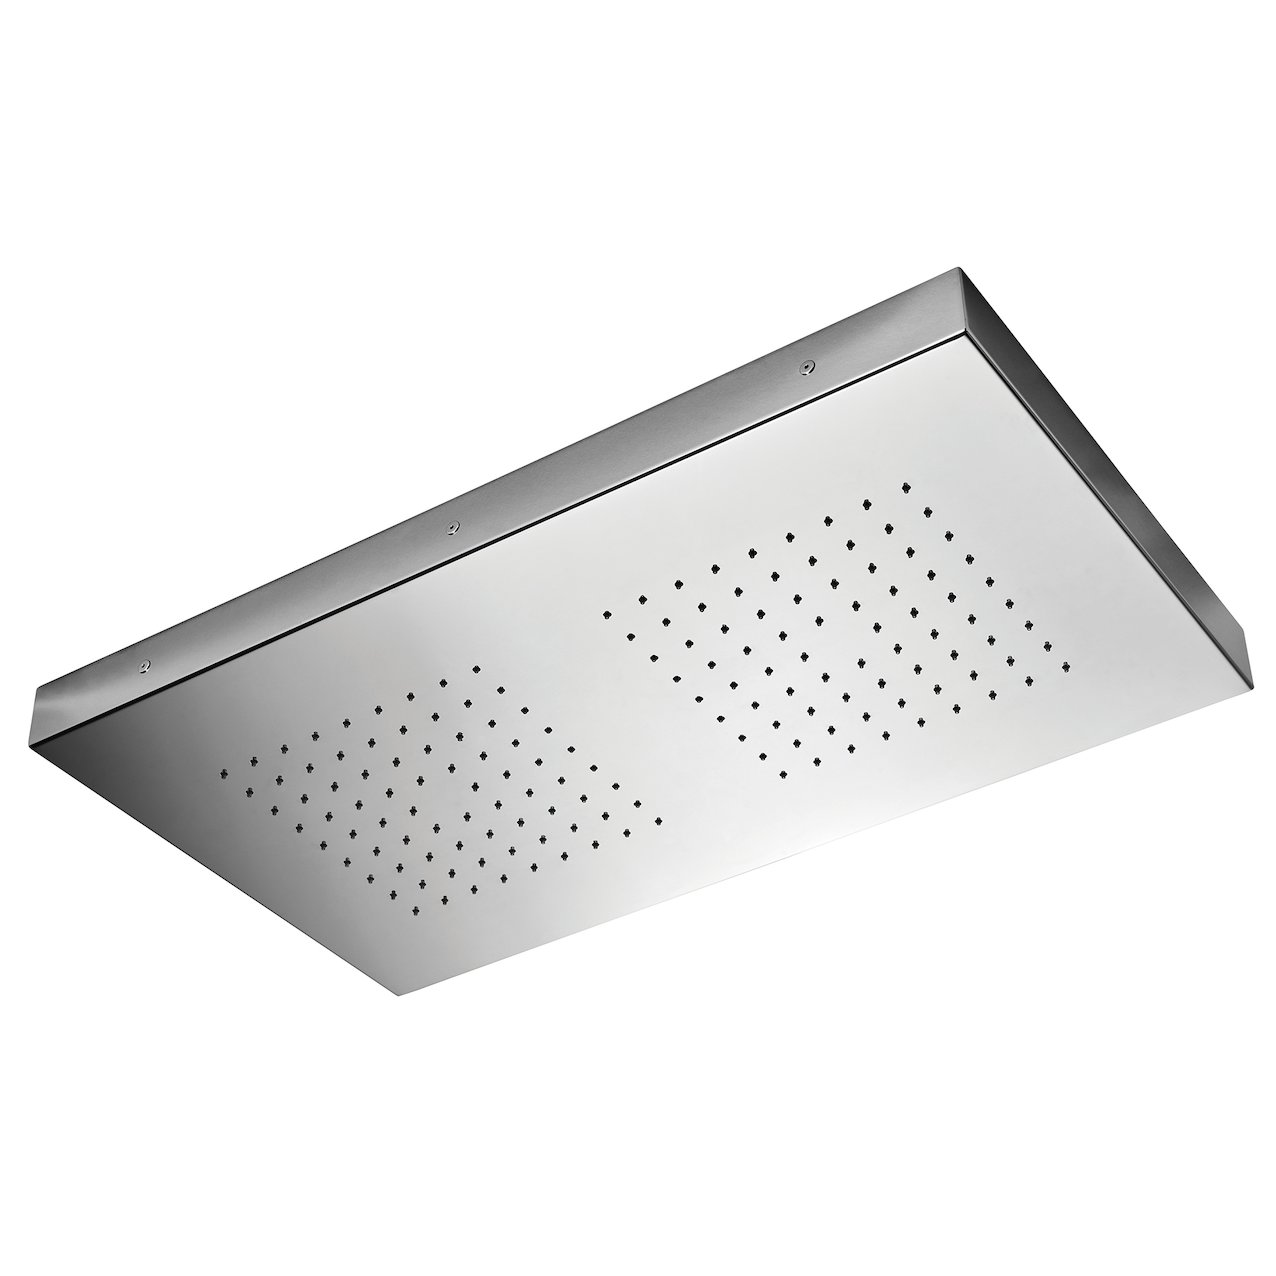 Square shower head Inox 700x400 2 rain jets